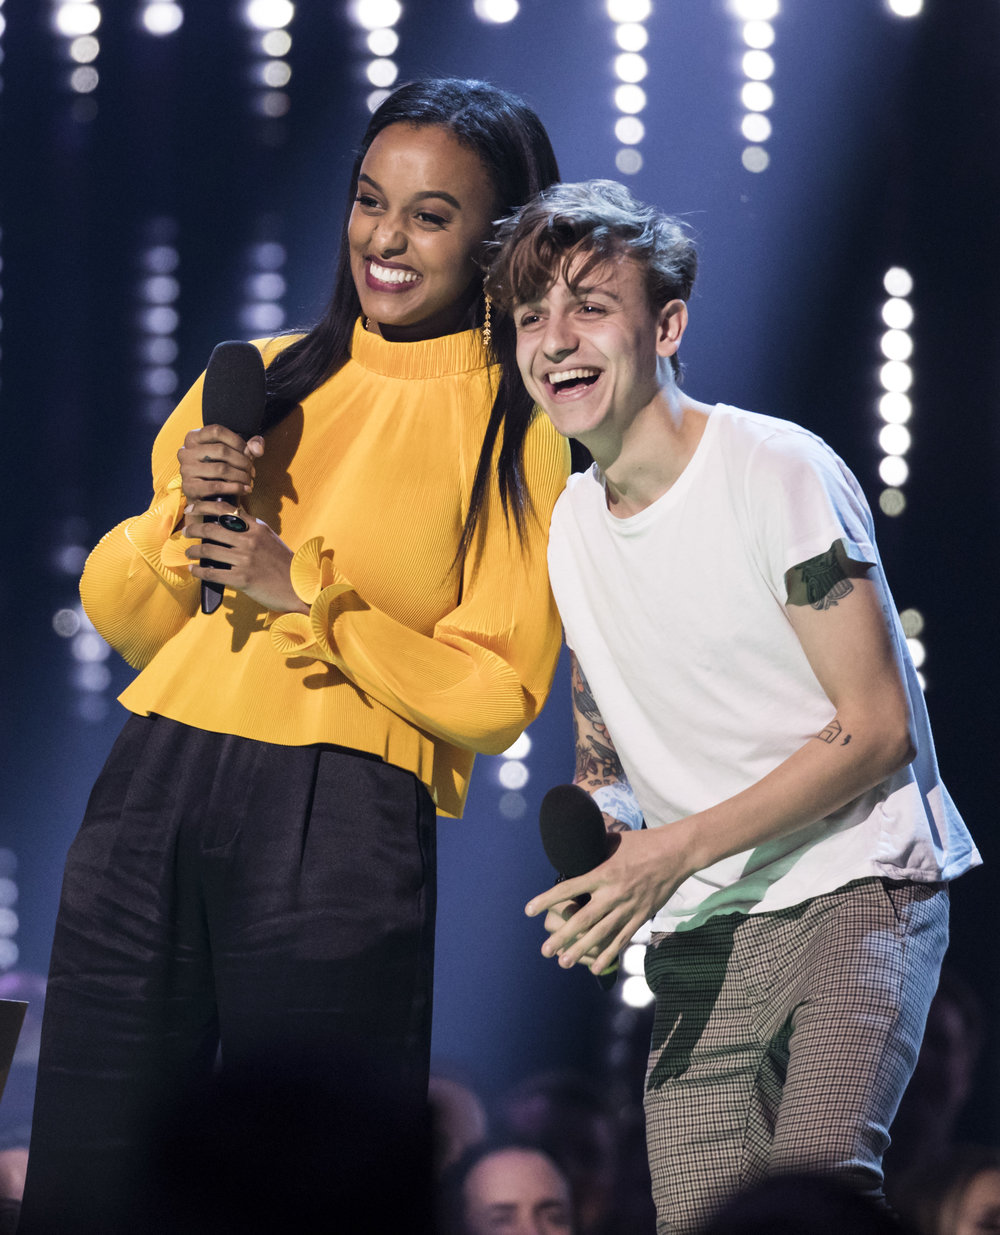 Ruth B. and Scott Helman